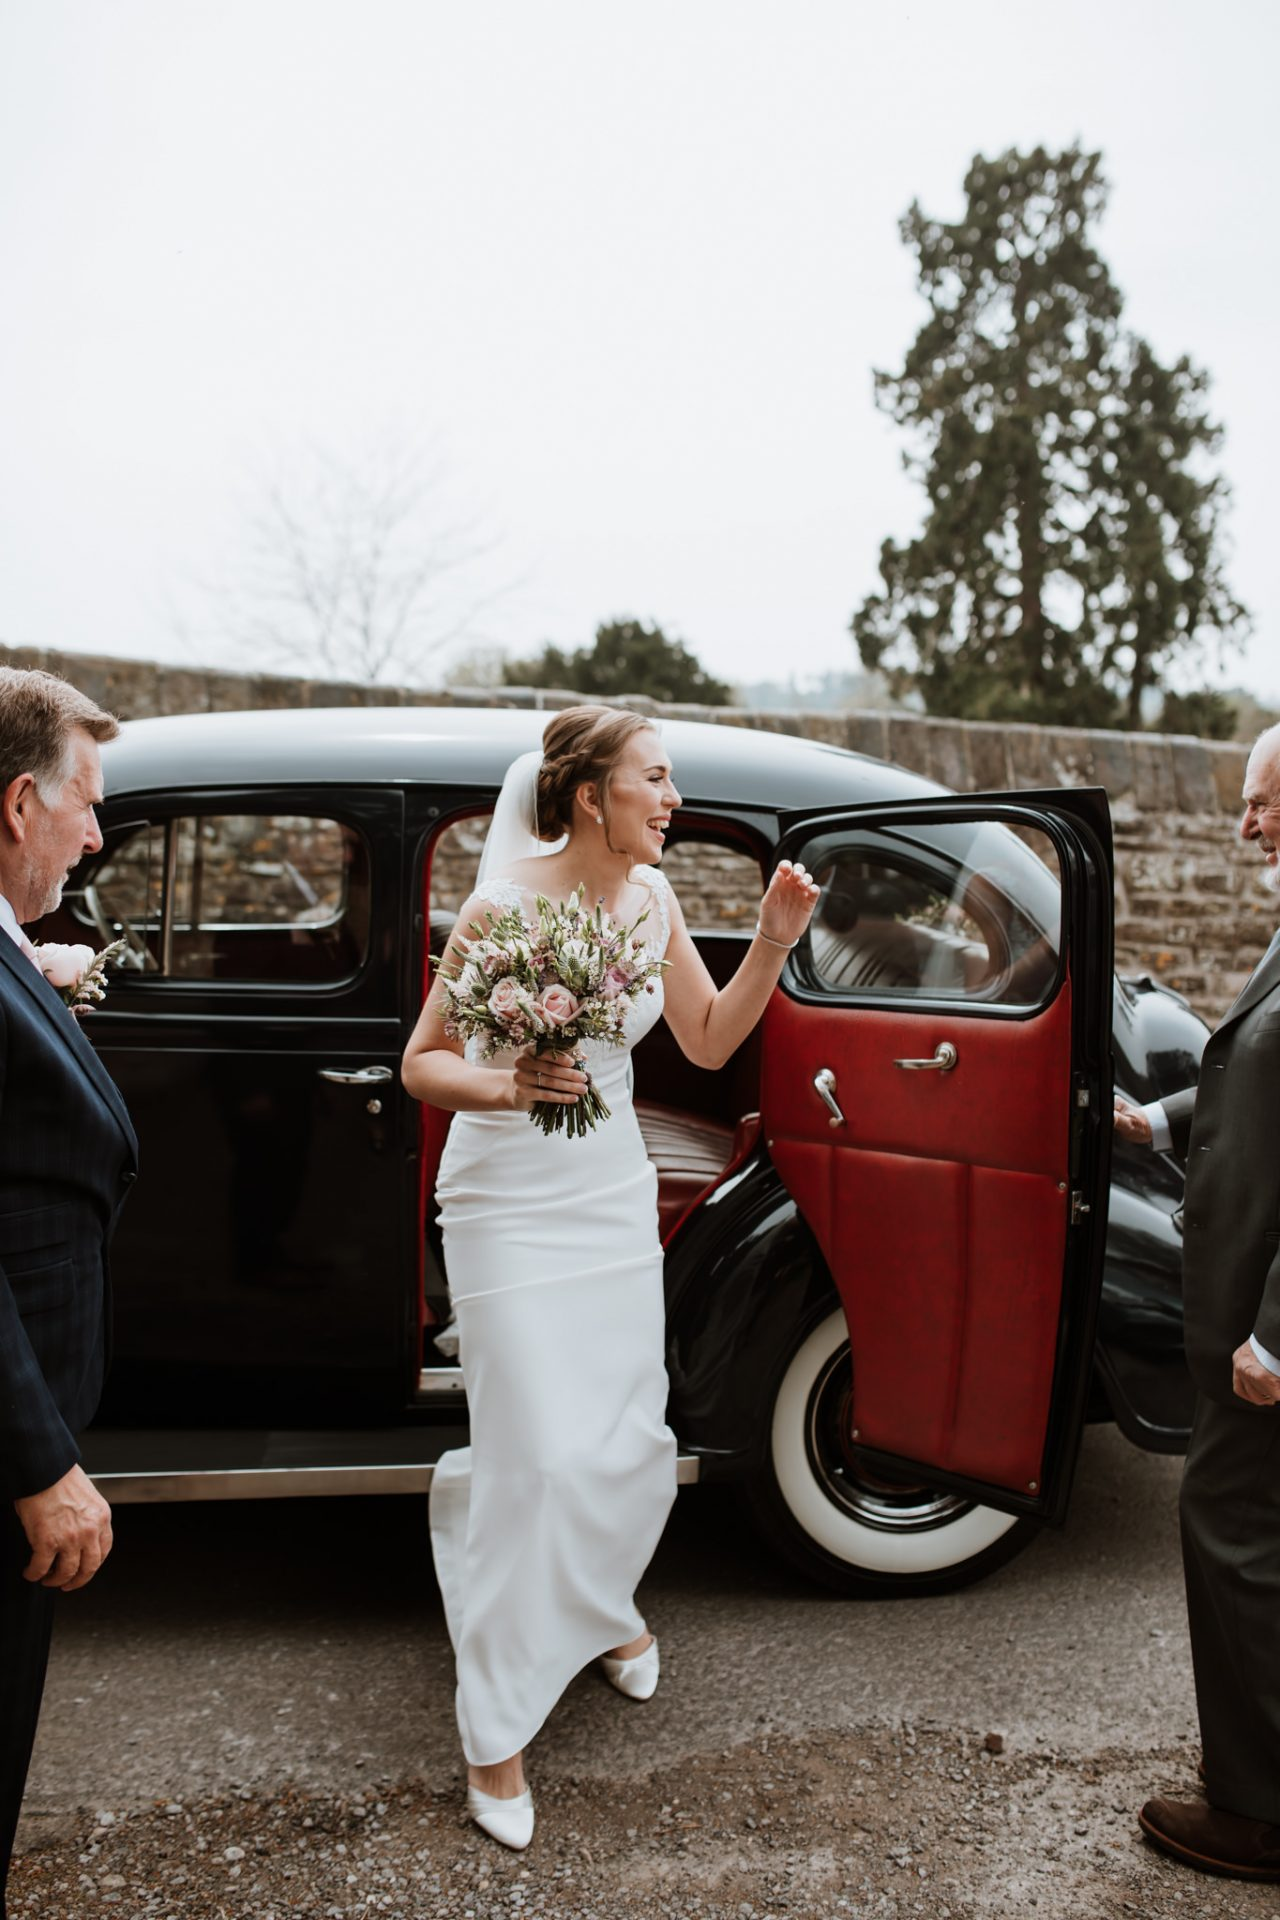 bride arriving to church in vintage car